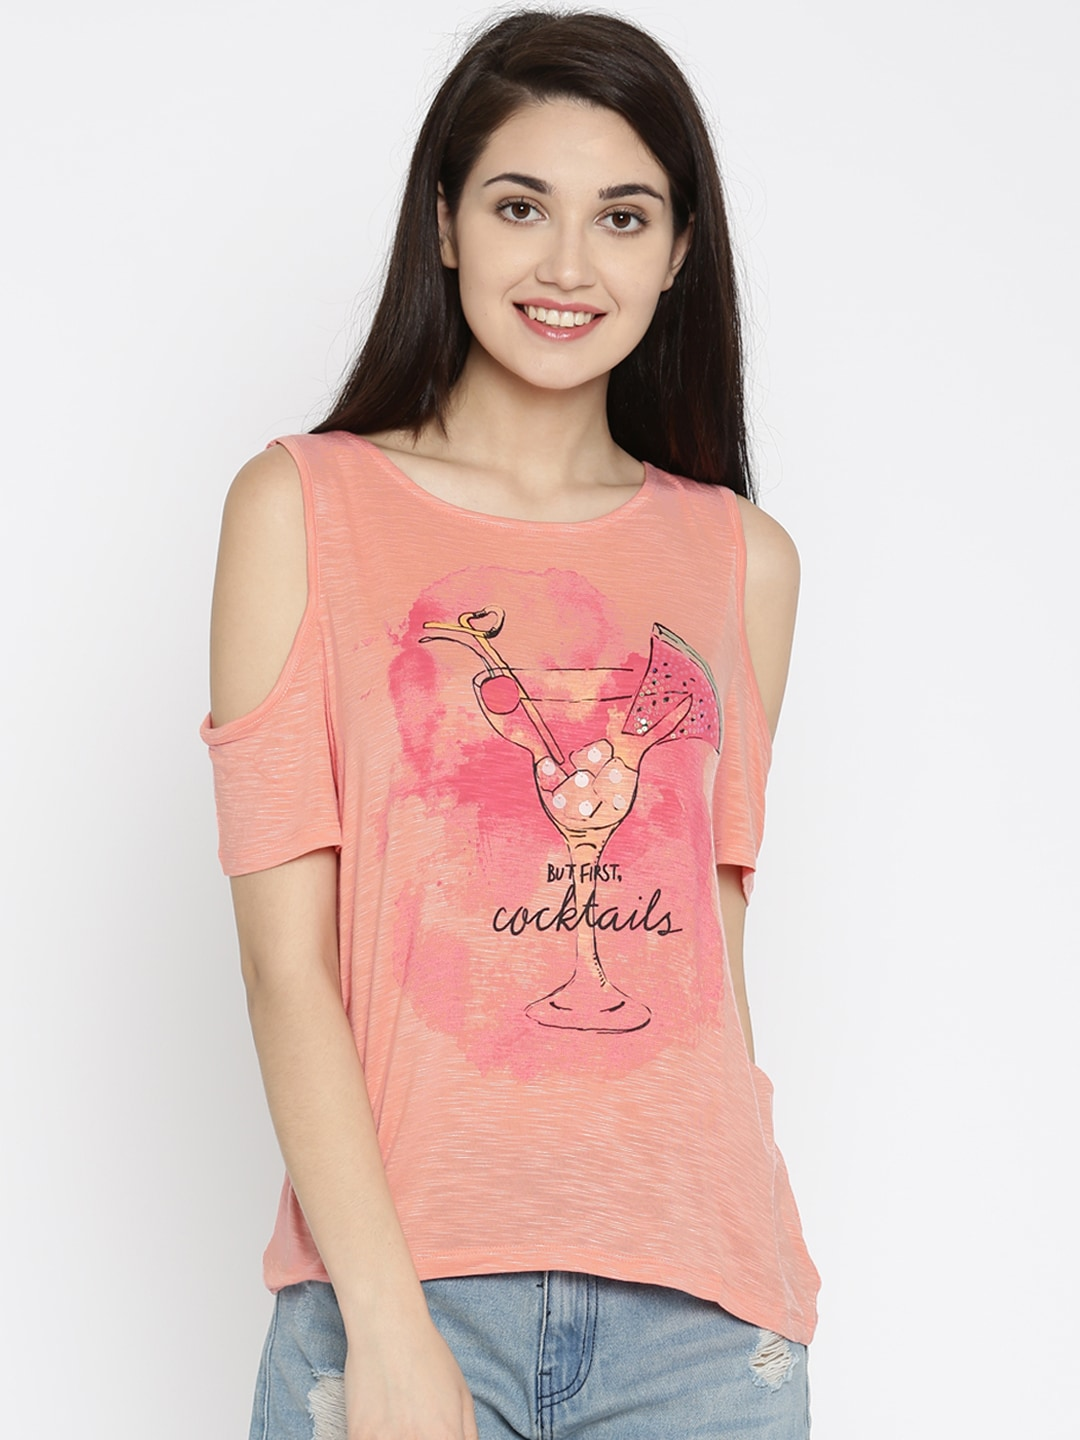 Ladies Tops - Buy Tops & Tshirts for Women Online in India - Myntra